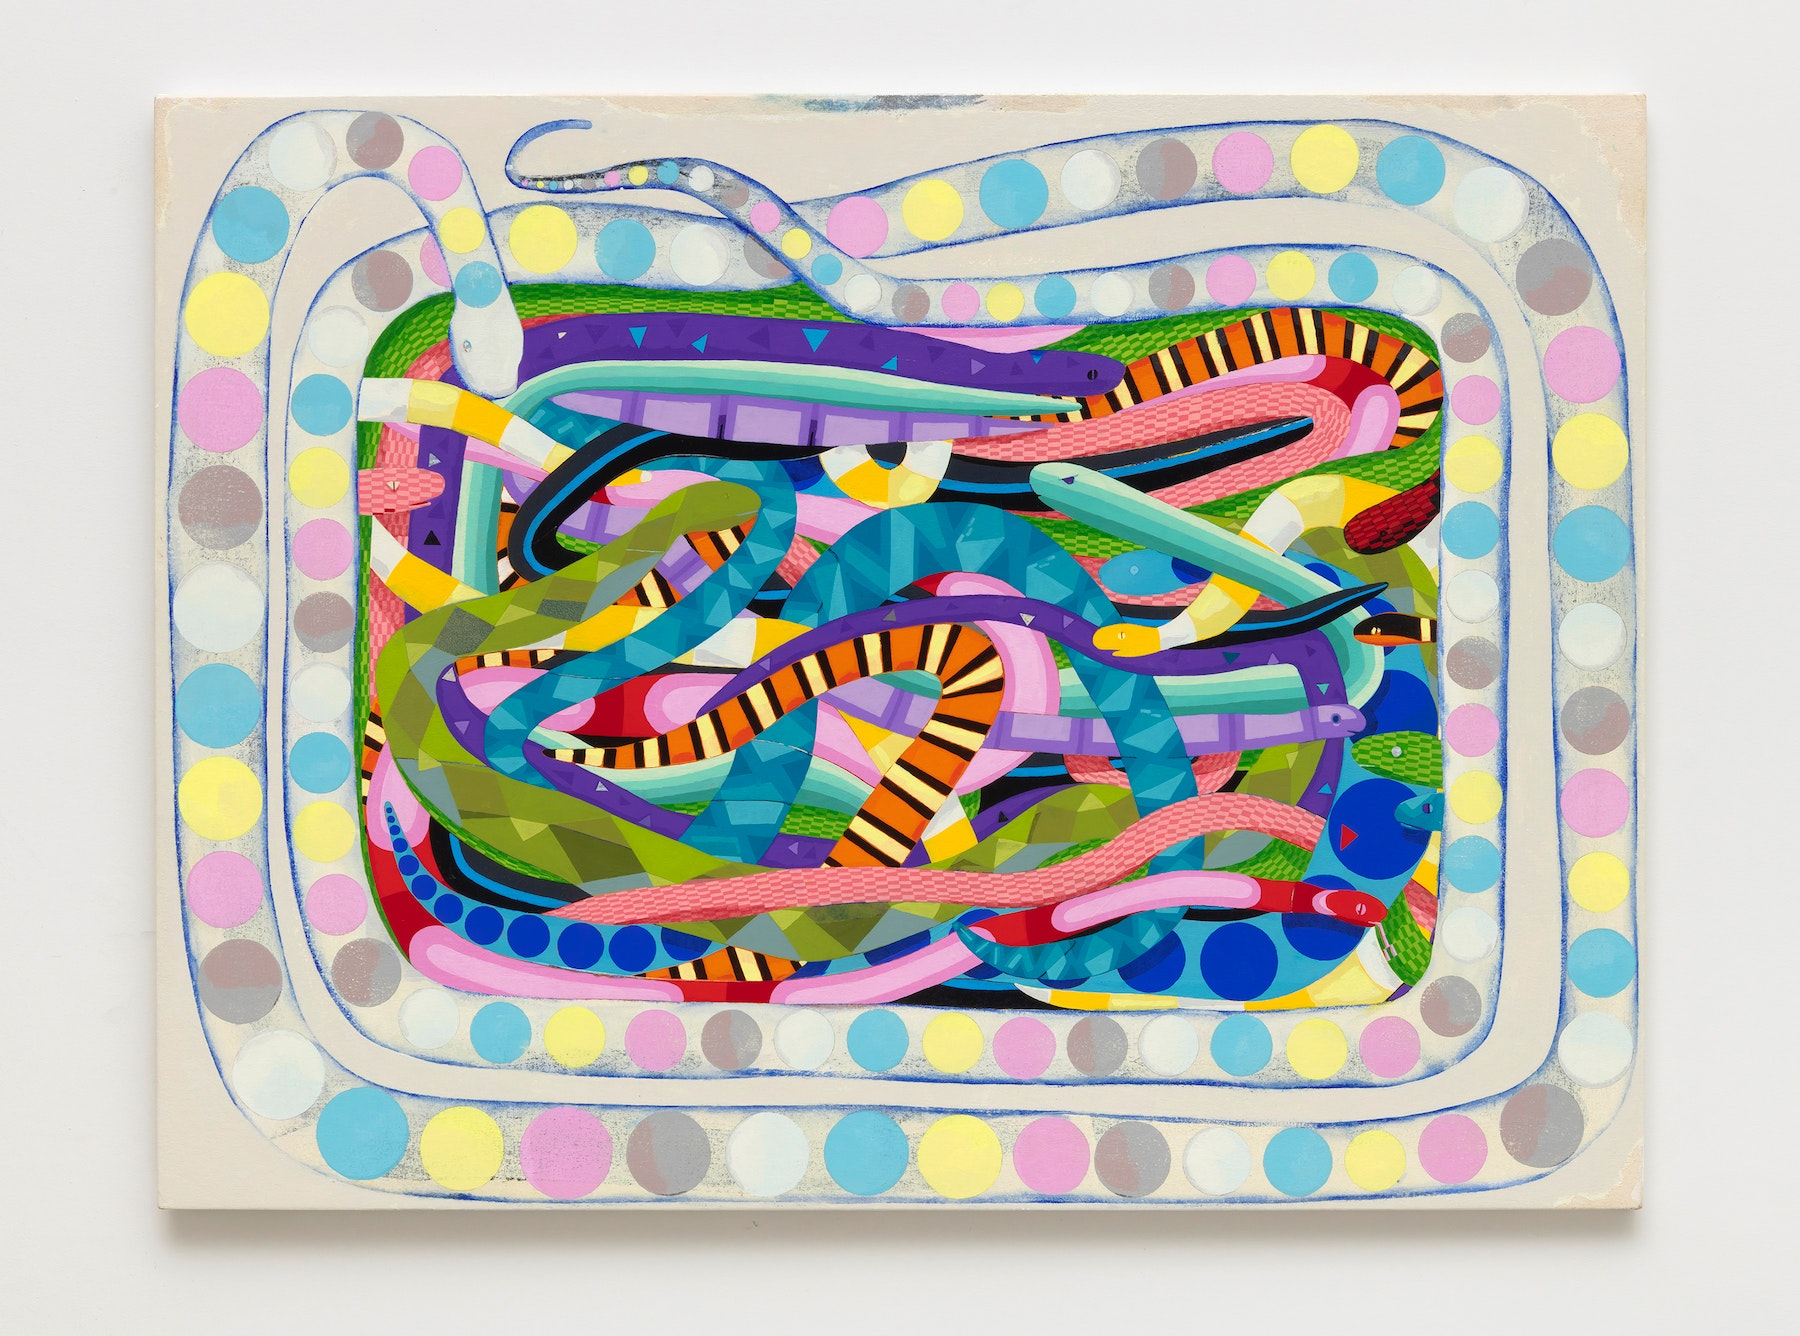 """Brad Eberhard """"Color Printer,"""" 2020 Oil on canvas over panel 36 x 48"""" [HxW] (91.44 x 121.92 cm) Inventory #EBE160 Courtesy of the artist and Vielmetter Los Angeles Photo credit: Robert Wedemeyer"""